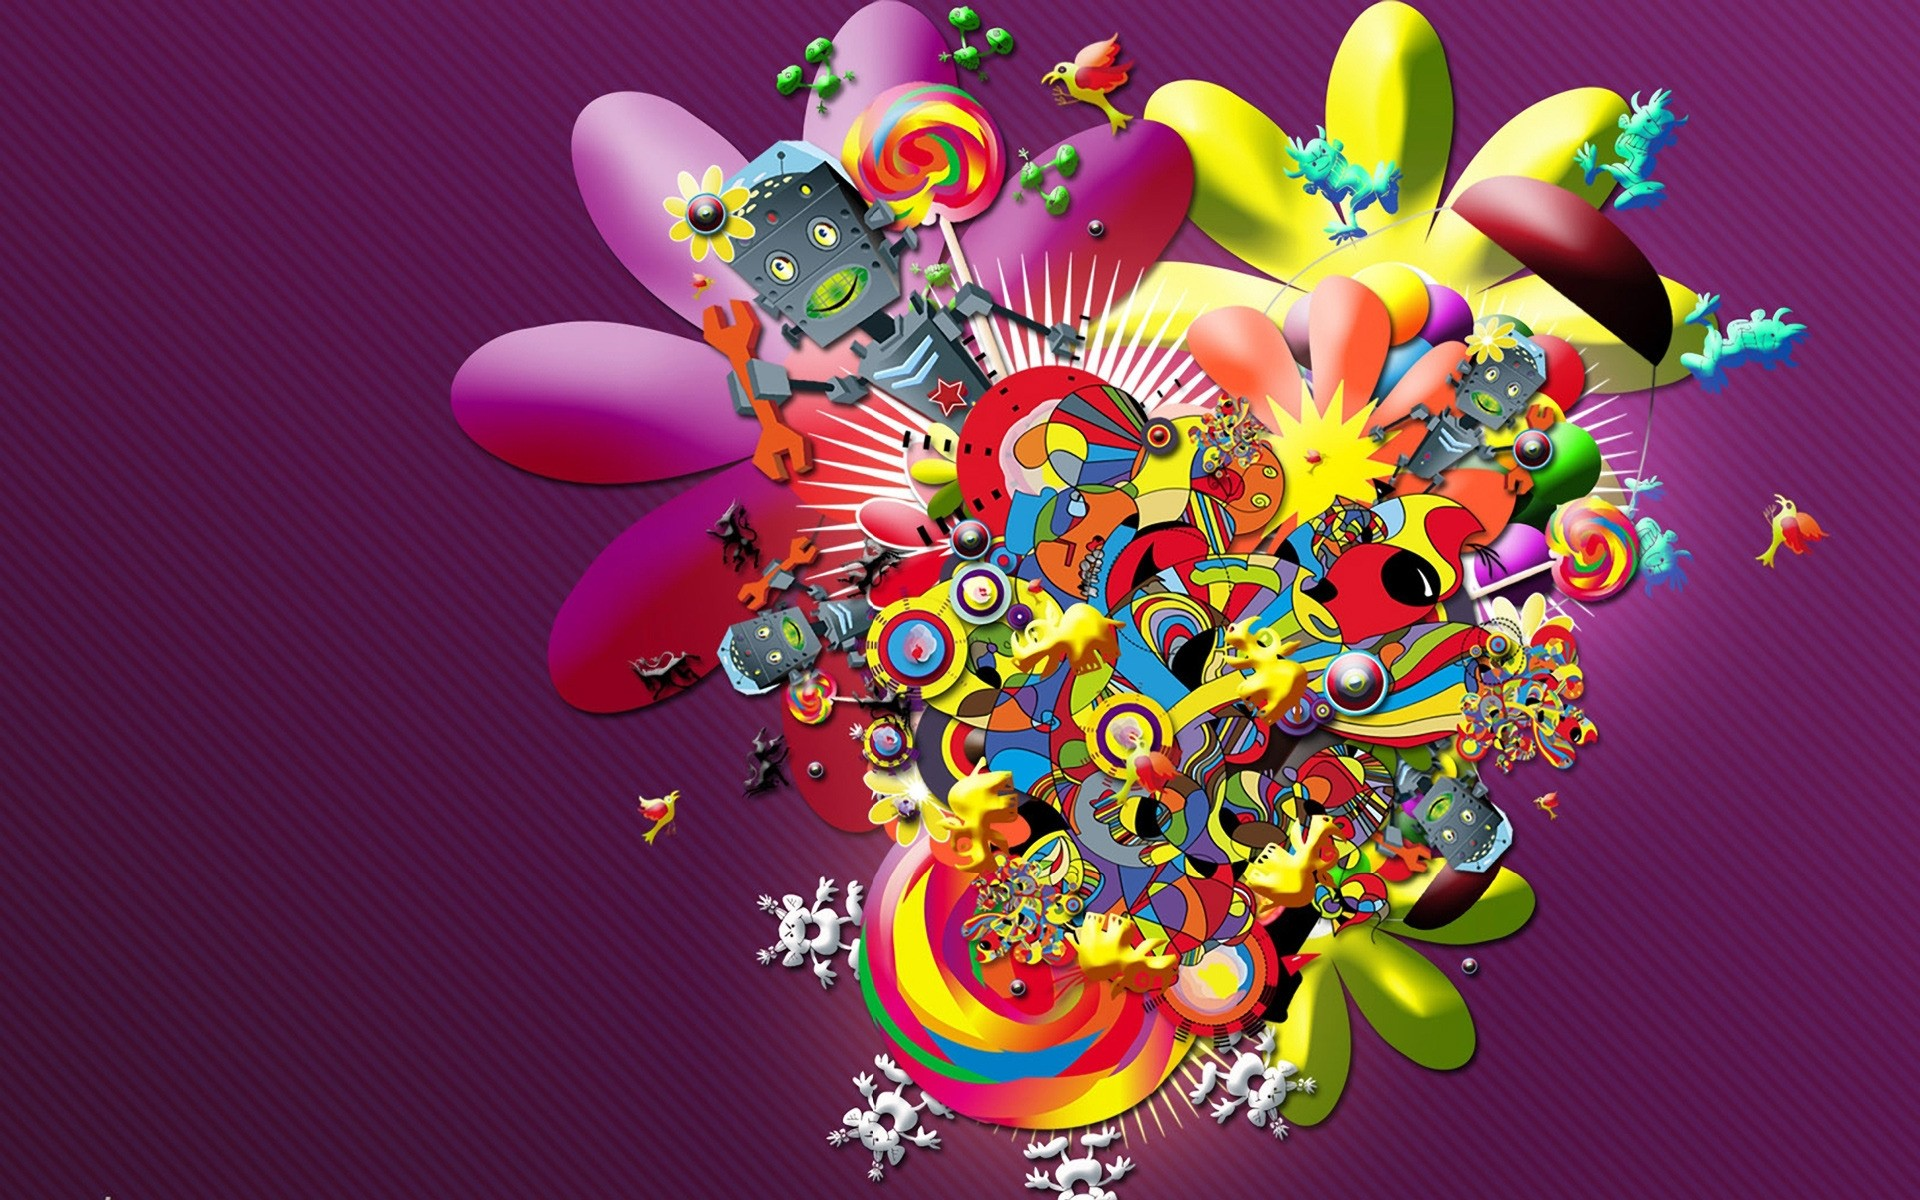 Cartoons wallpapers for Android. Wallpapers on desktop ...